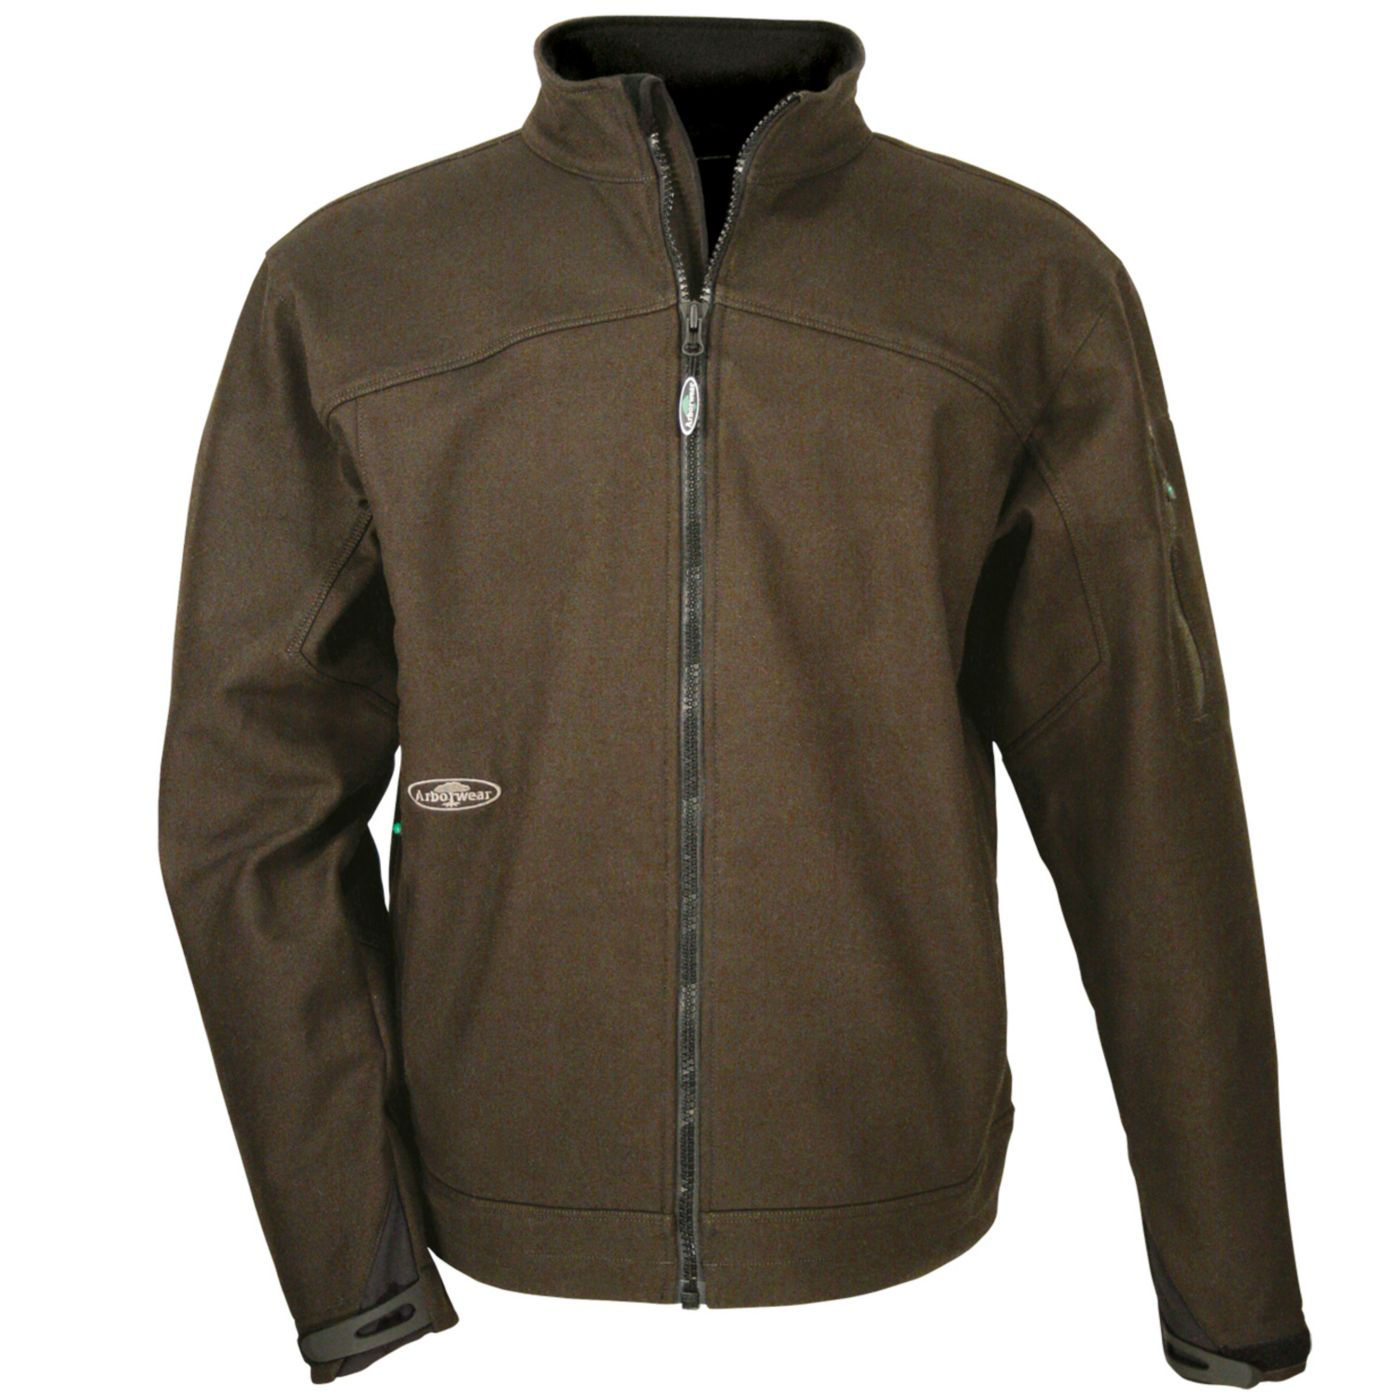 Arborwear Men's Stretch Cambium Soft Shell Jacket